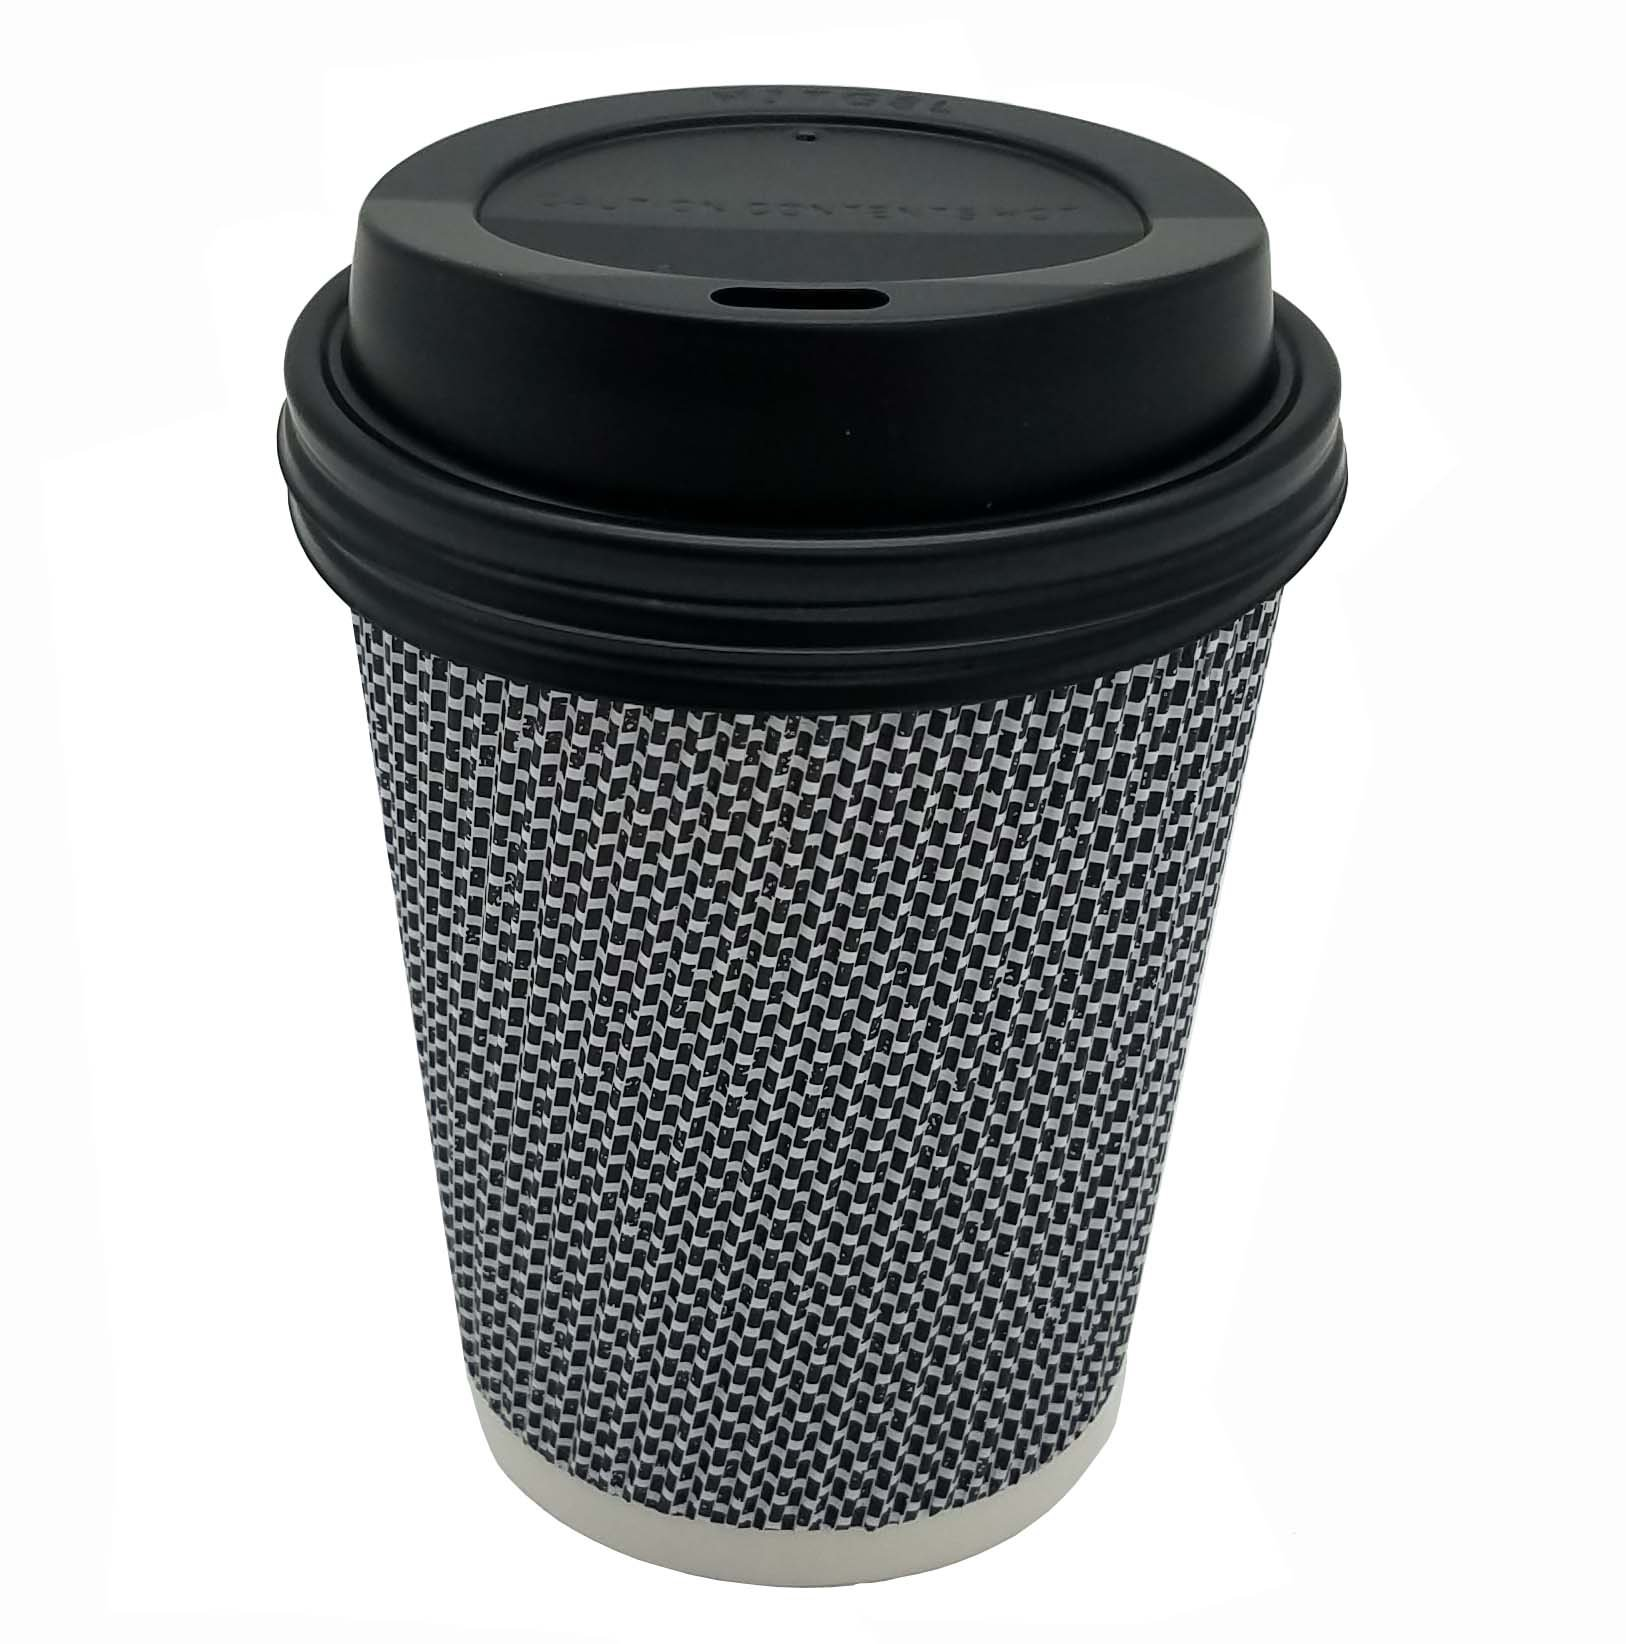 [600 SET] 8 oz Disposable Double Walled Hot Cups with Lids - No Sleeves needed 8oz Premium Insulated Ripple Wall Hot Coffee Tea Chocolate Drinks Espresso Travel To Go Paper Cup and lid Black Geometric